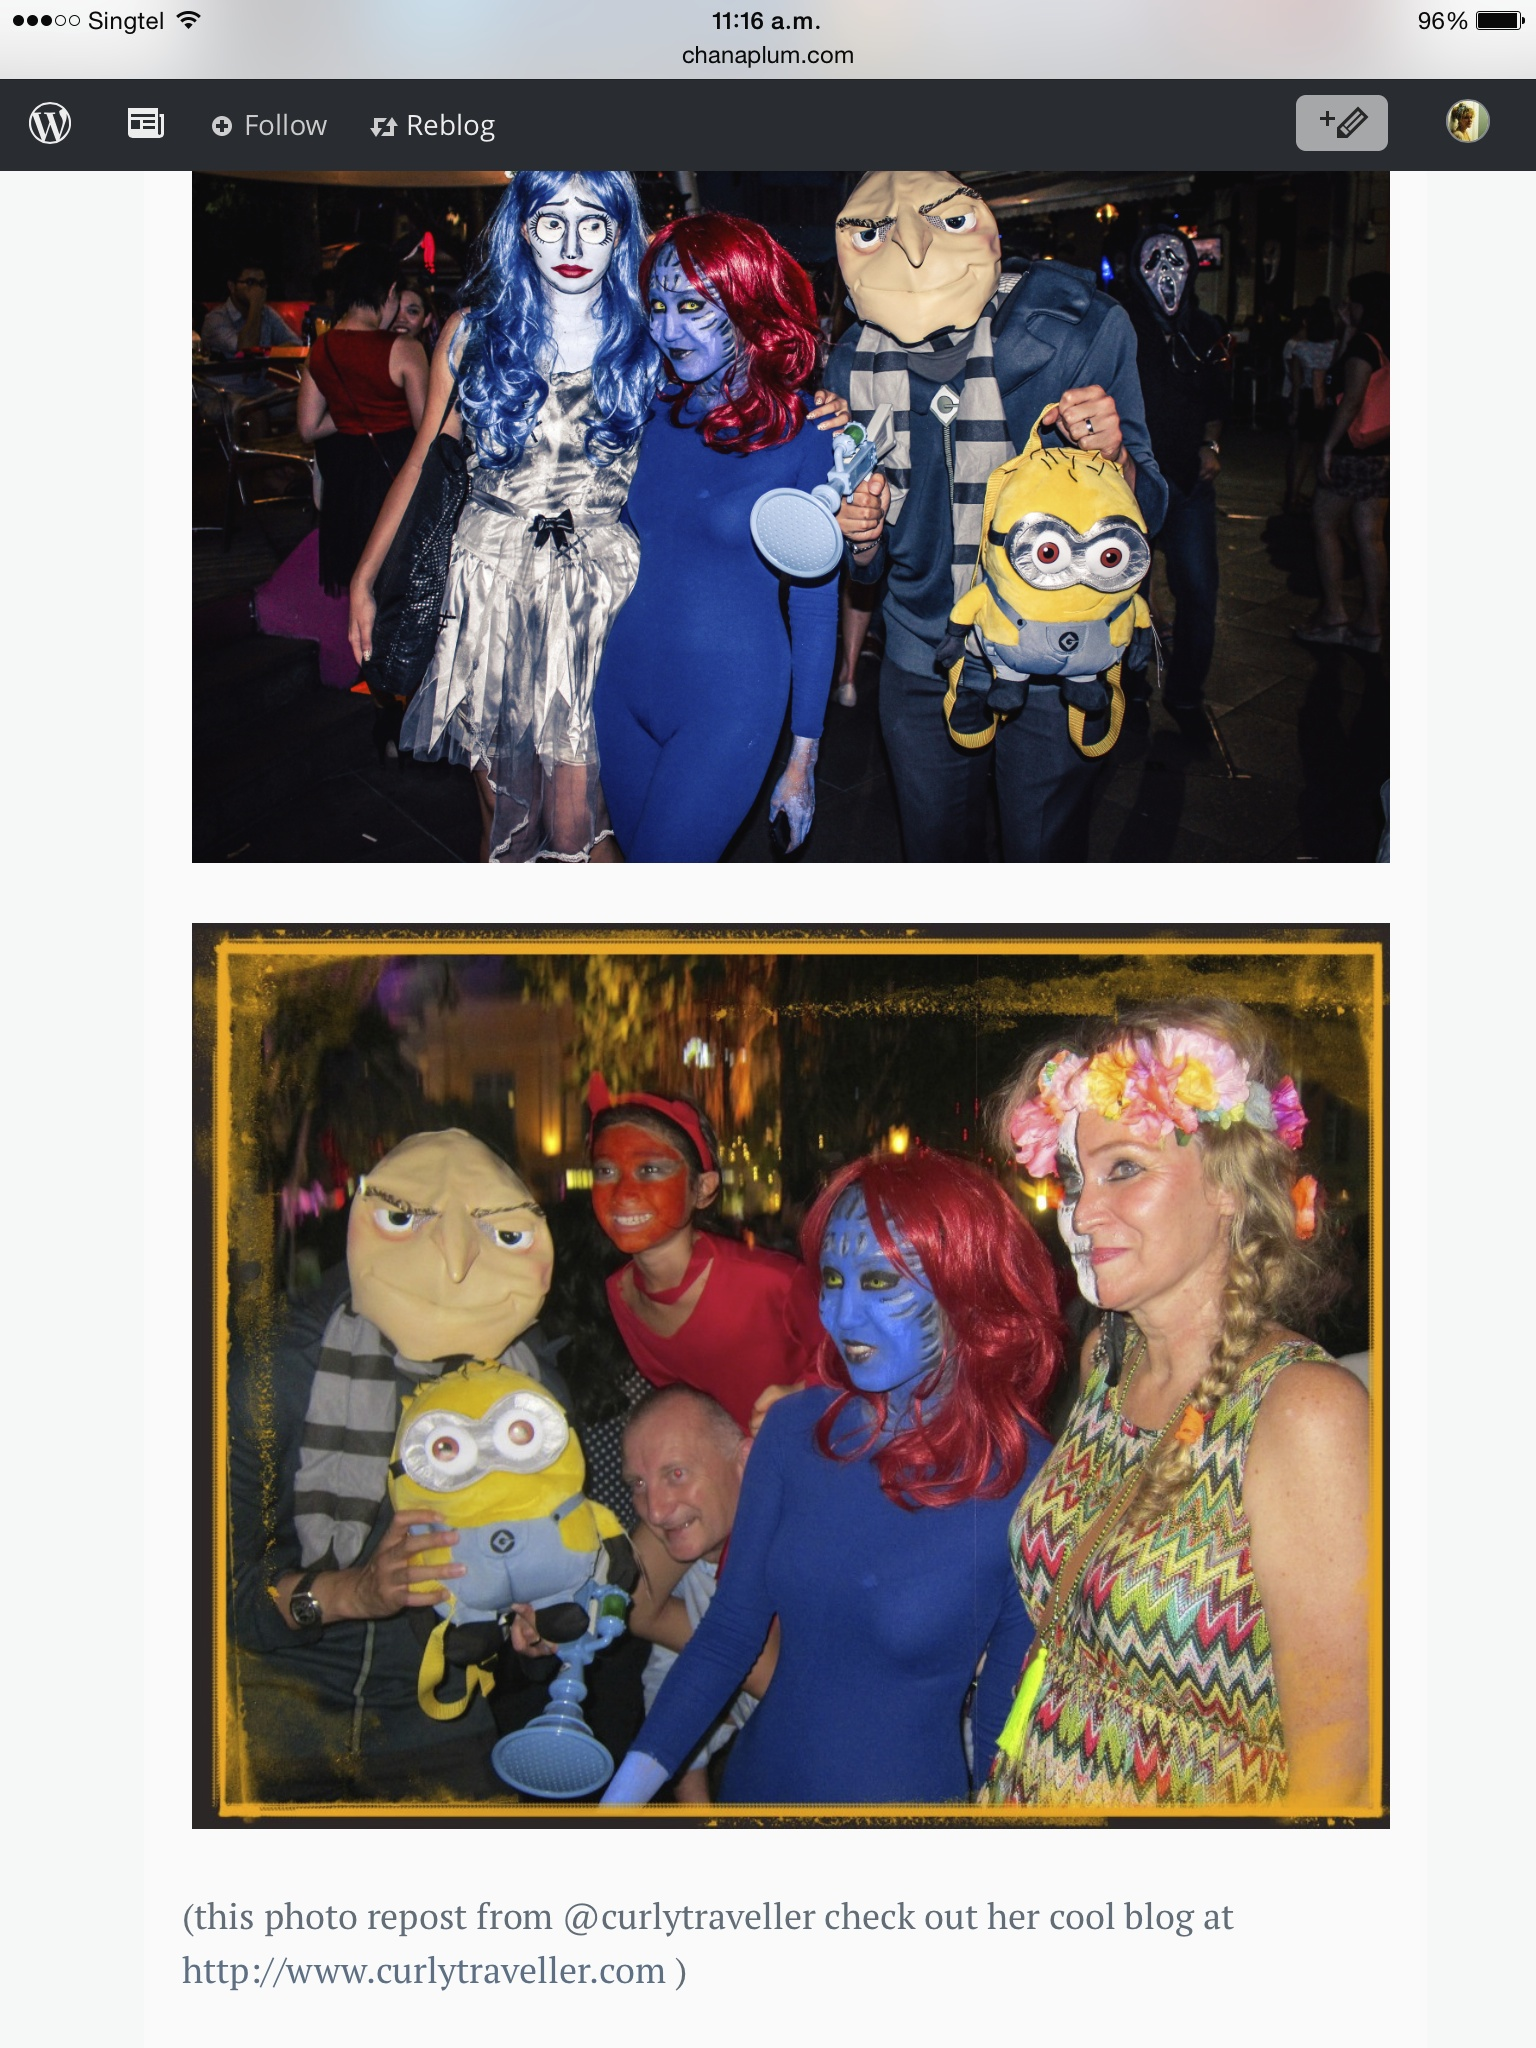 People in Halloween costumes at Clarke Quay Singapore 2014 |curlytraveller.com